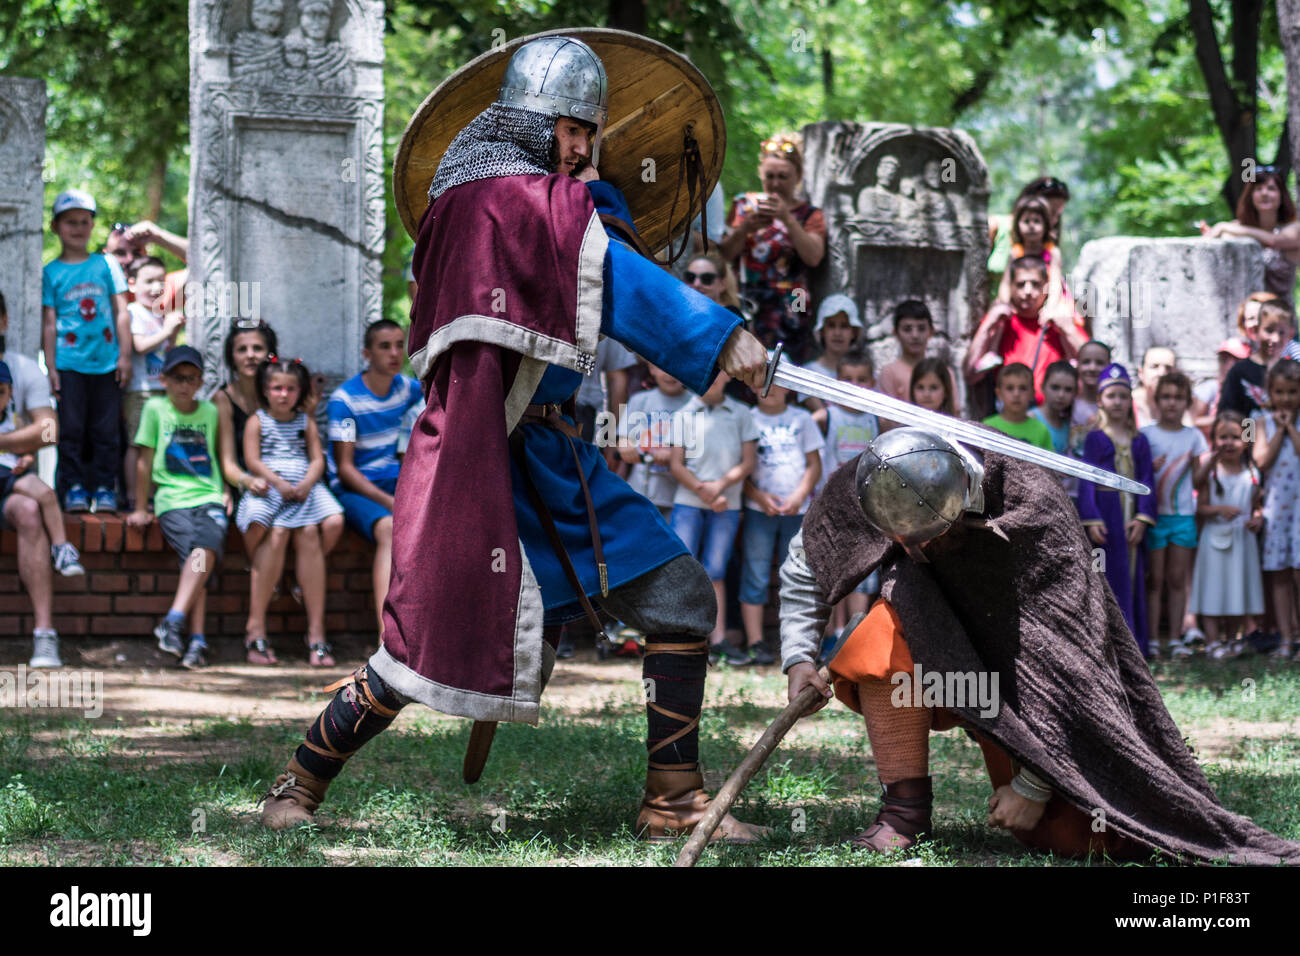 nis-serbia-june-10-2018-medieval-knight-